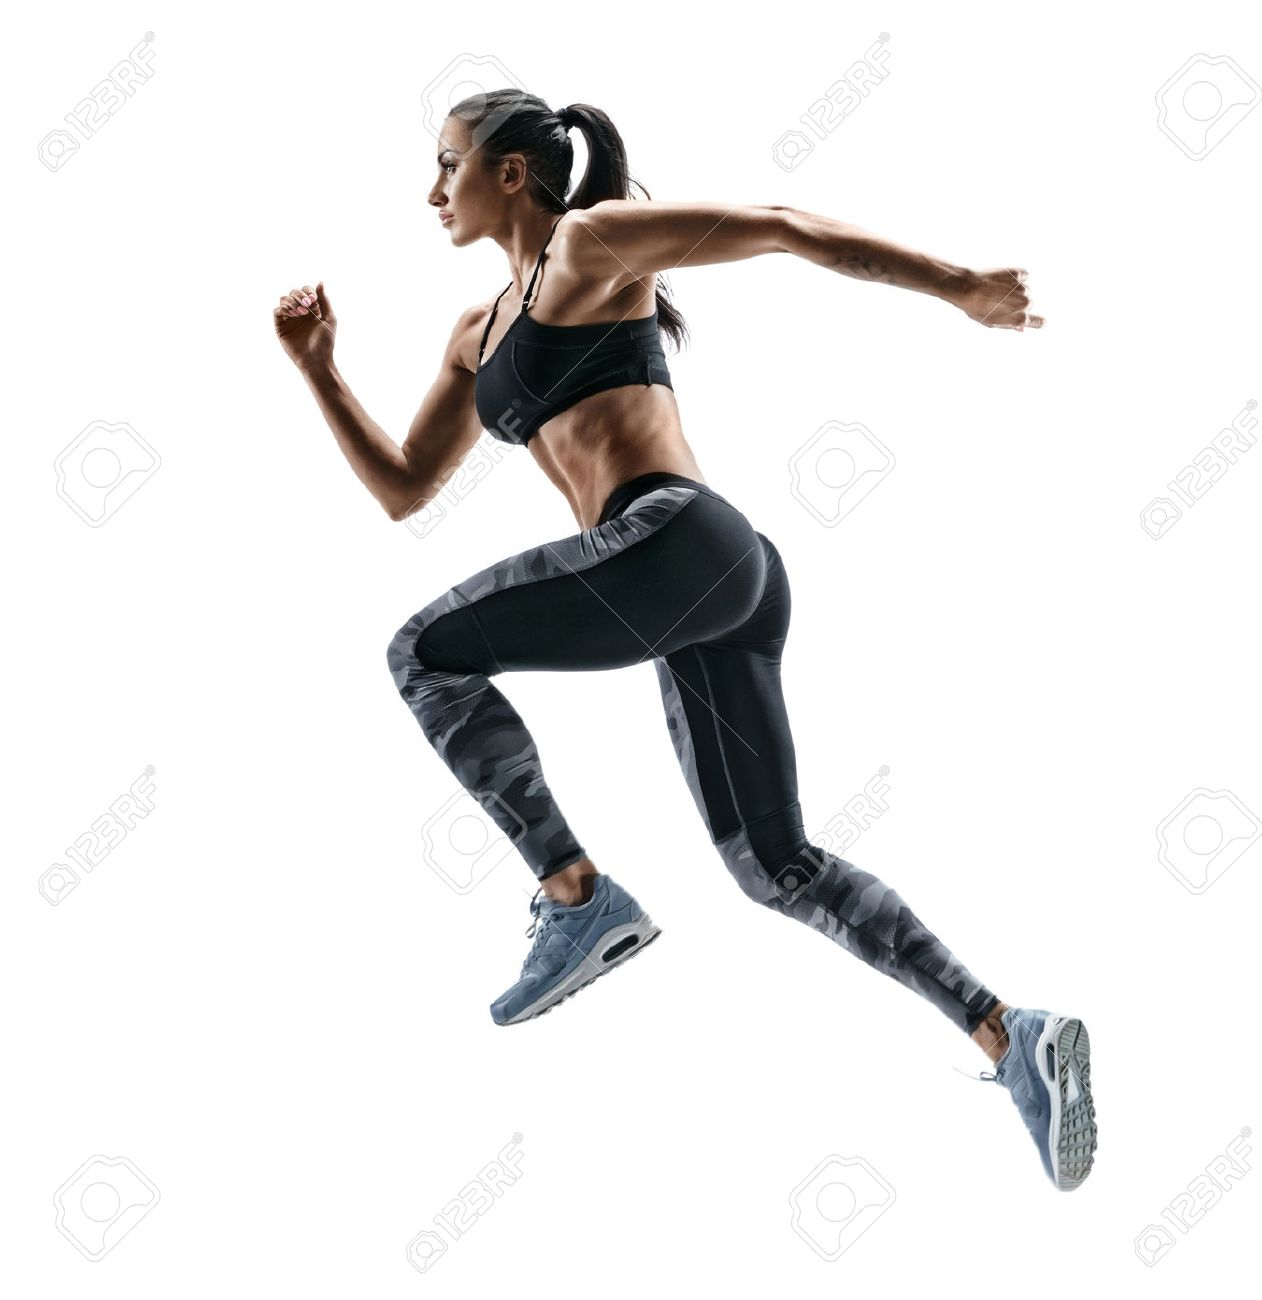 Woman runner in silhouette on white background. Dynamic movement. Side view - 78508066